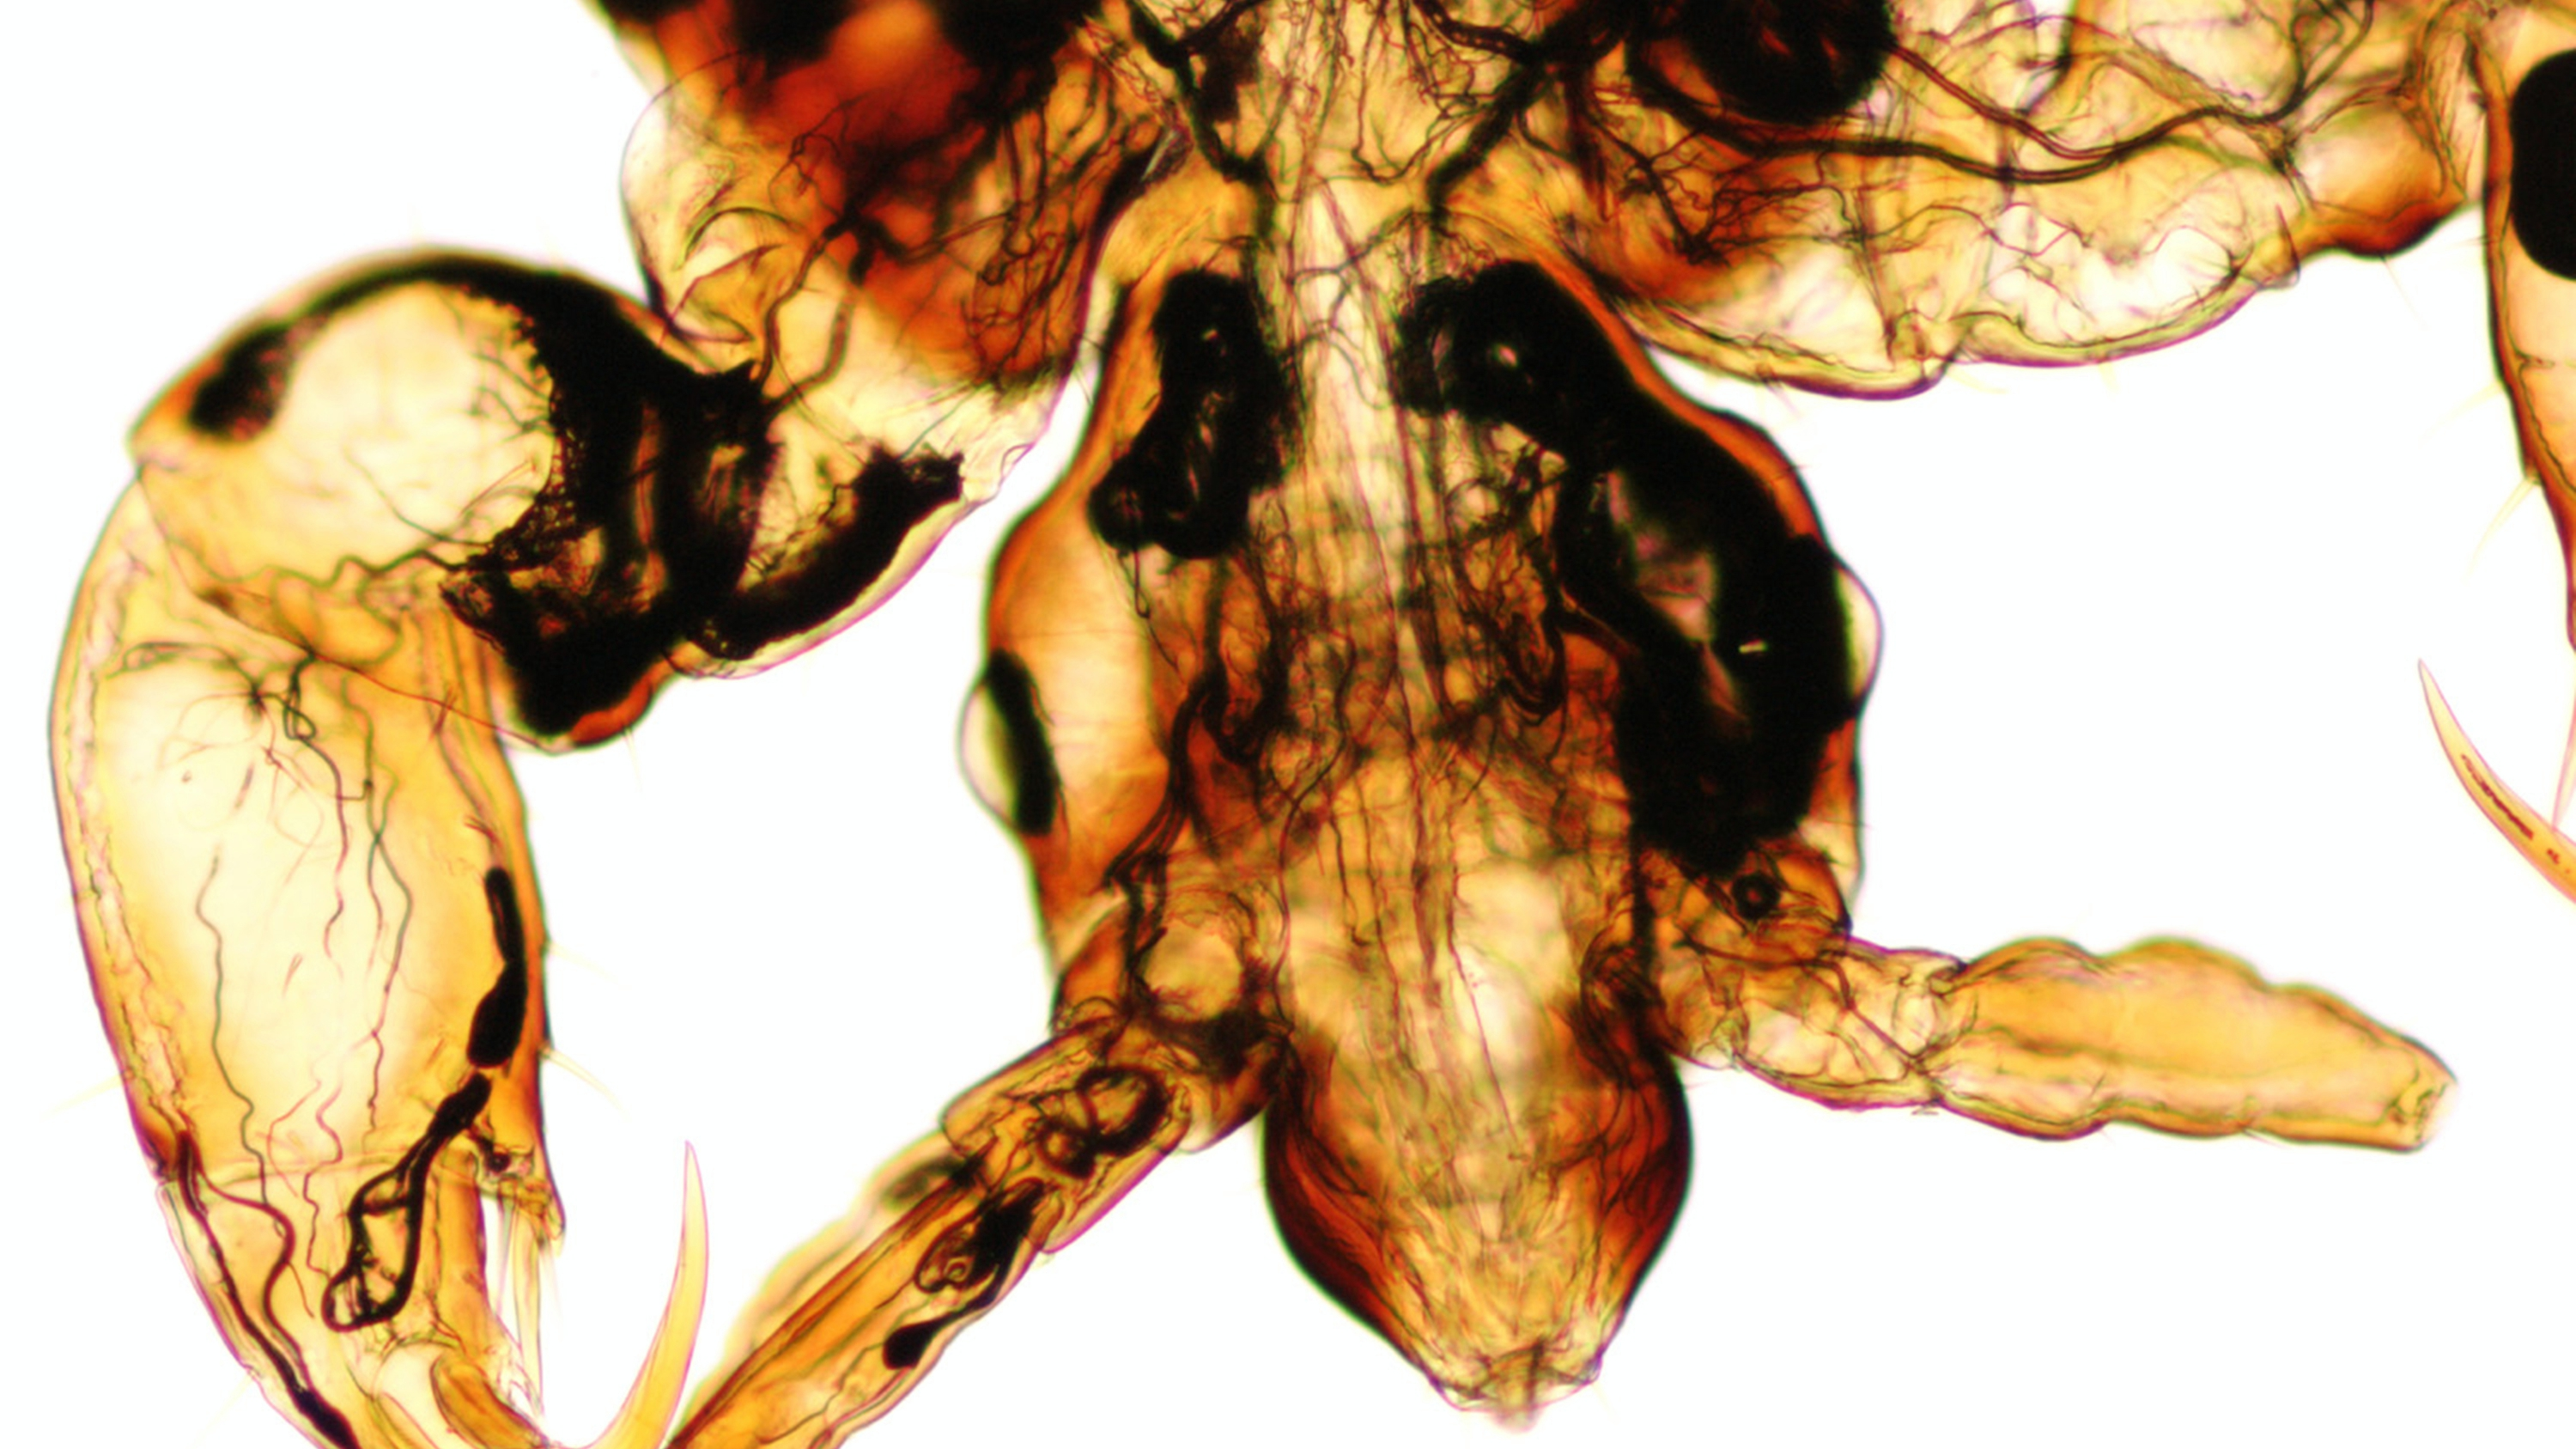 microscopic view of a head louse